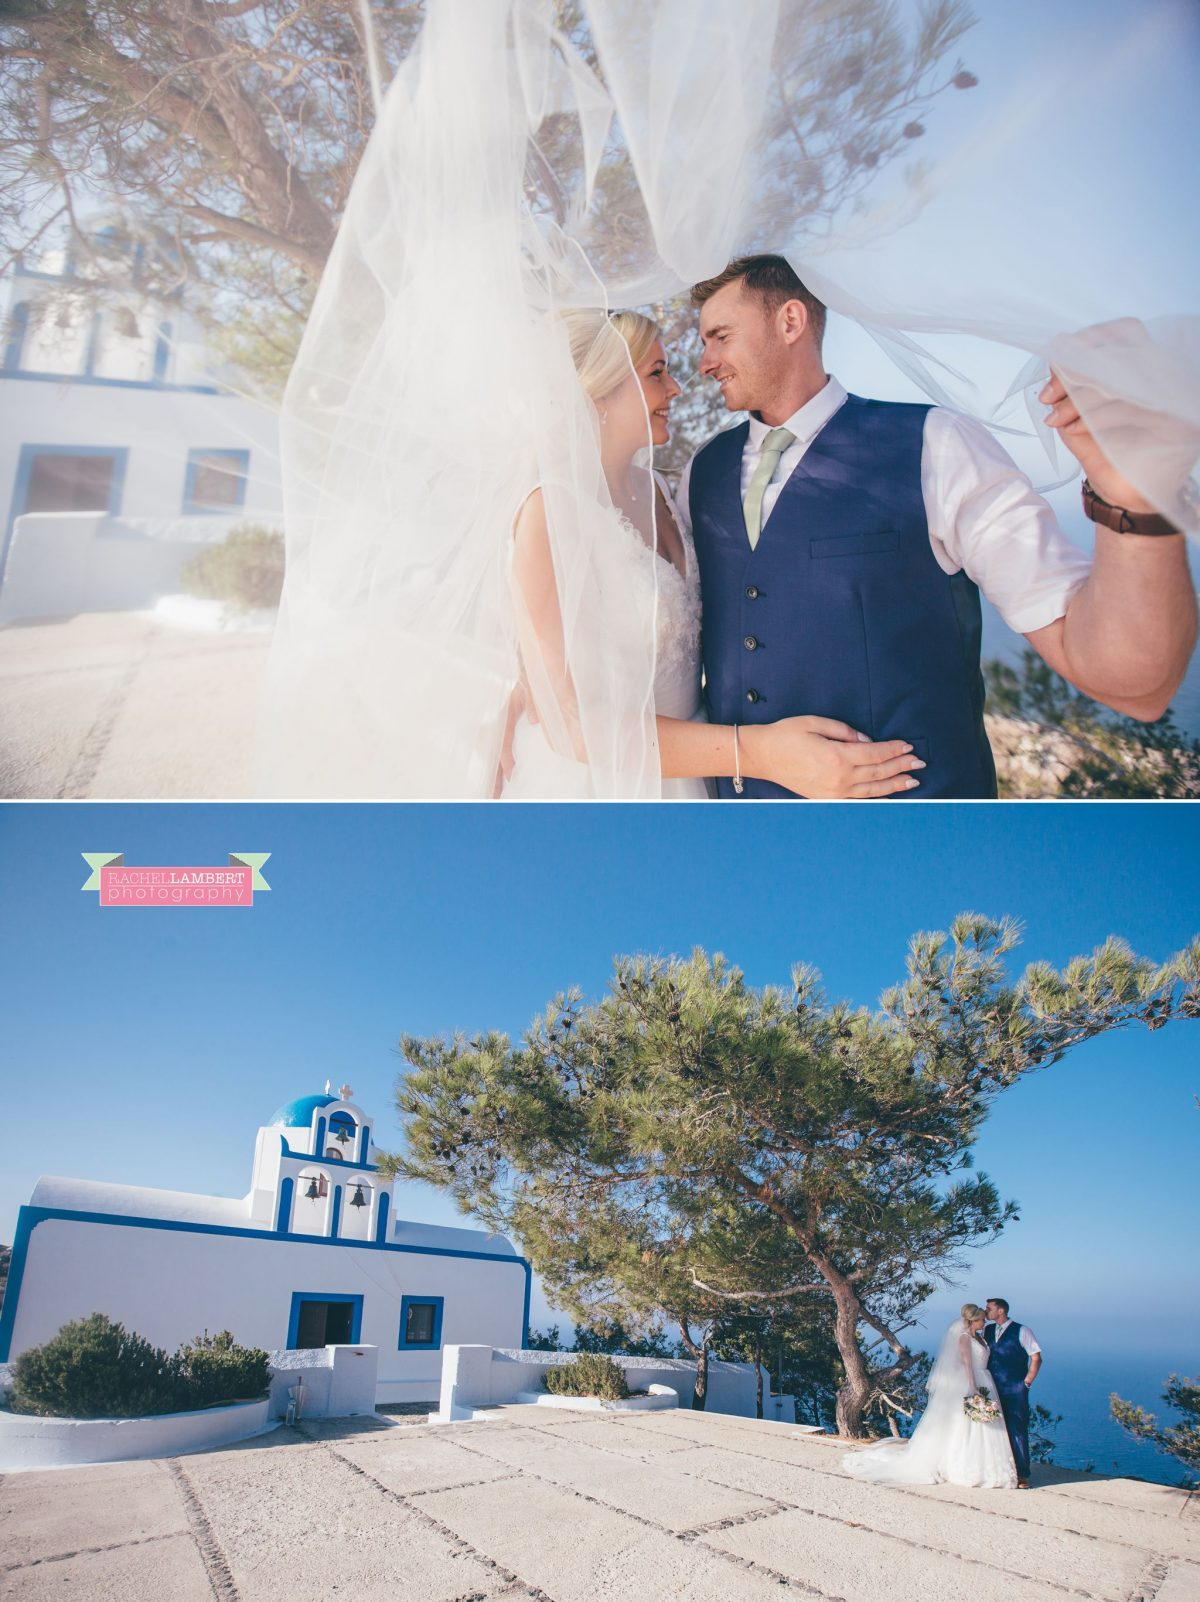 destination_wedding_photographer_santorini_greece_leCiel_rachel_lambert_photography_ 44